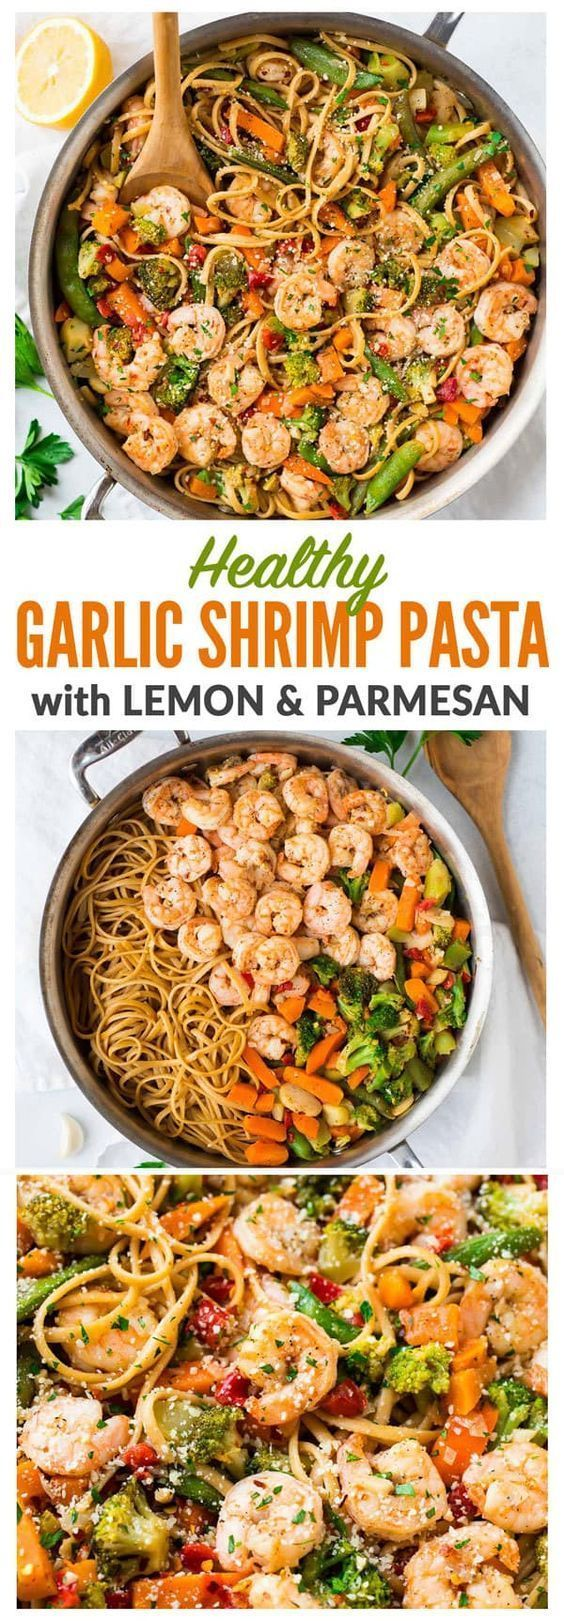 An easy, healthy Lemon Garlic Shrimp Pasta with Parmesan. Frozen stir fry veggies make this recipe extra quick with minimal prep. Ready in 30 minutes and a total crowd pleaser! Simple, lightly spicy, and perfect for date night or easy healthy dinners. #healthy #shrimppasta #garlicshrimp via @wellplated #garlicshrimprecipes